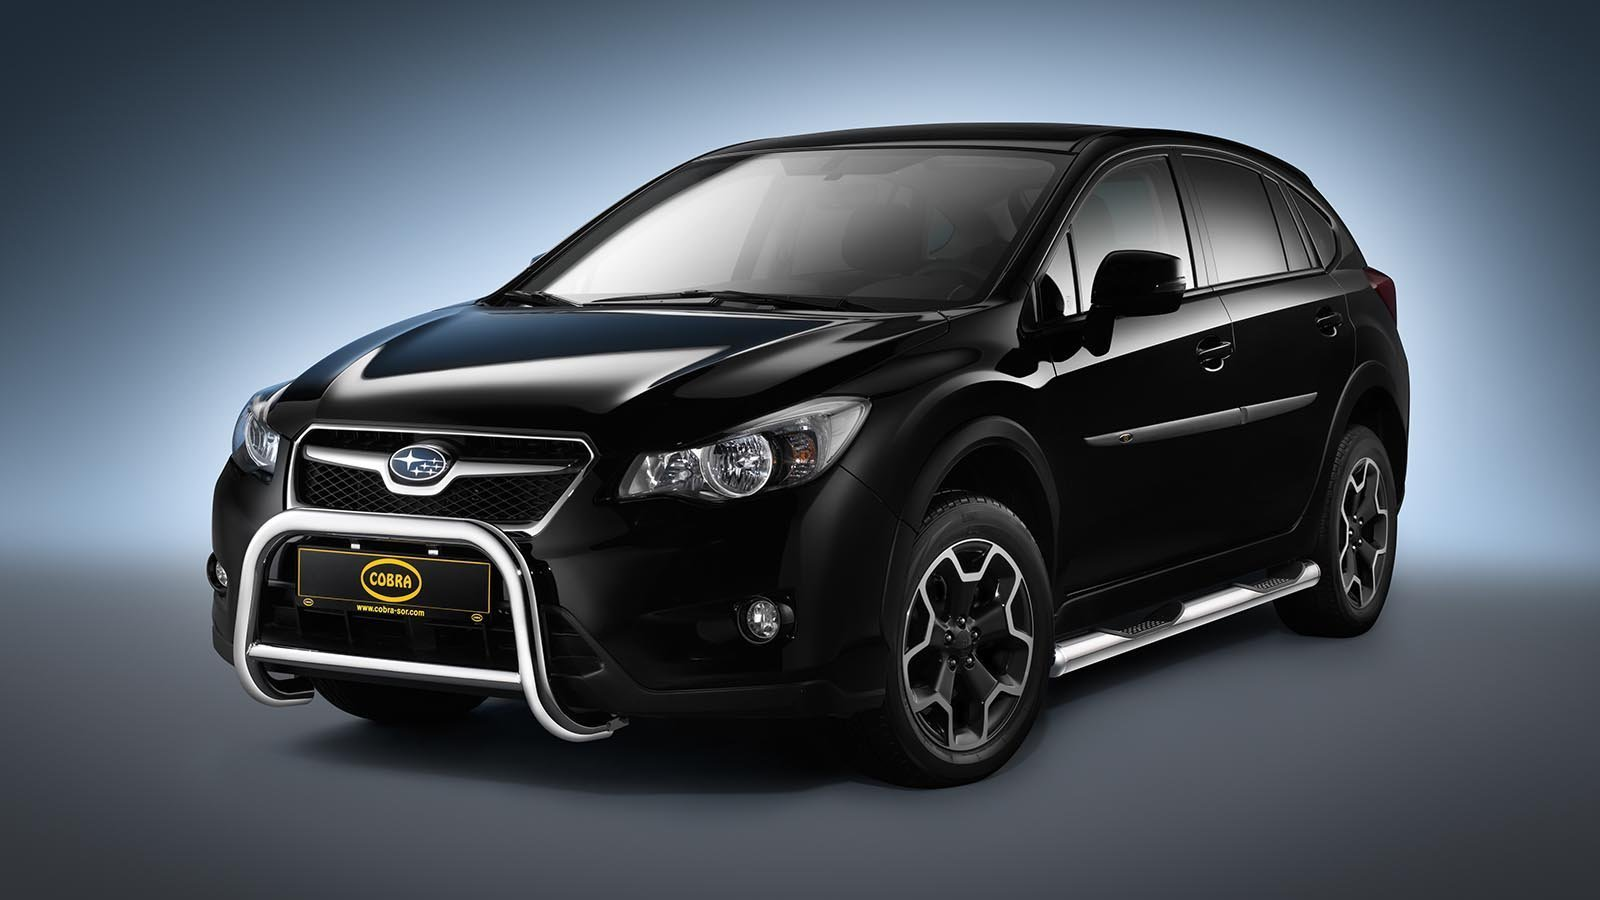 subaru xv front guard tuning parts to subaru. Black Bedroom Furniture Sets. Home Design Ideas